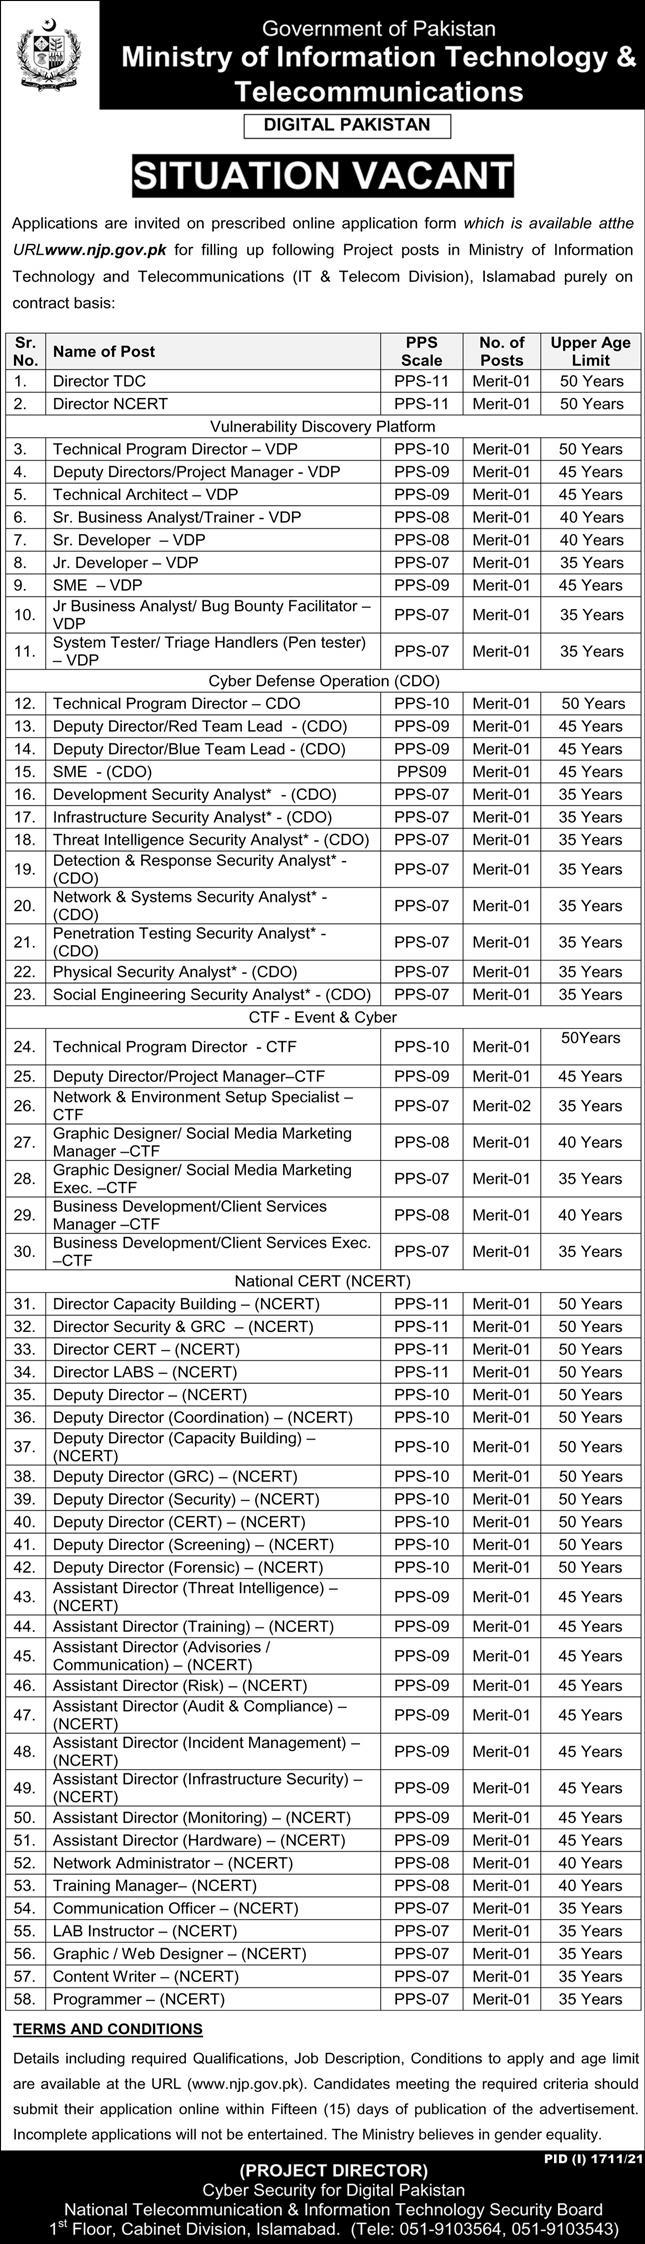 Ministry of Information Technology & Telecommunications Jobs 2021